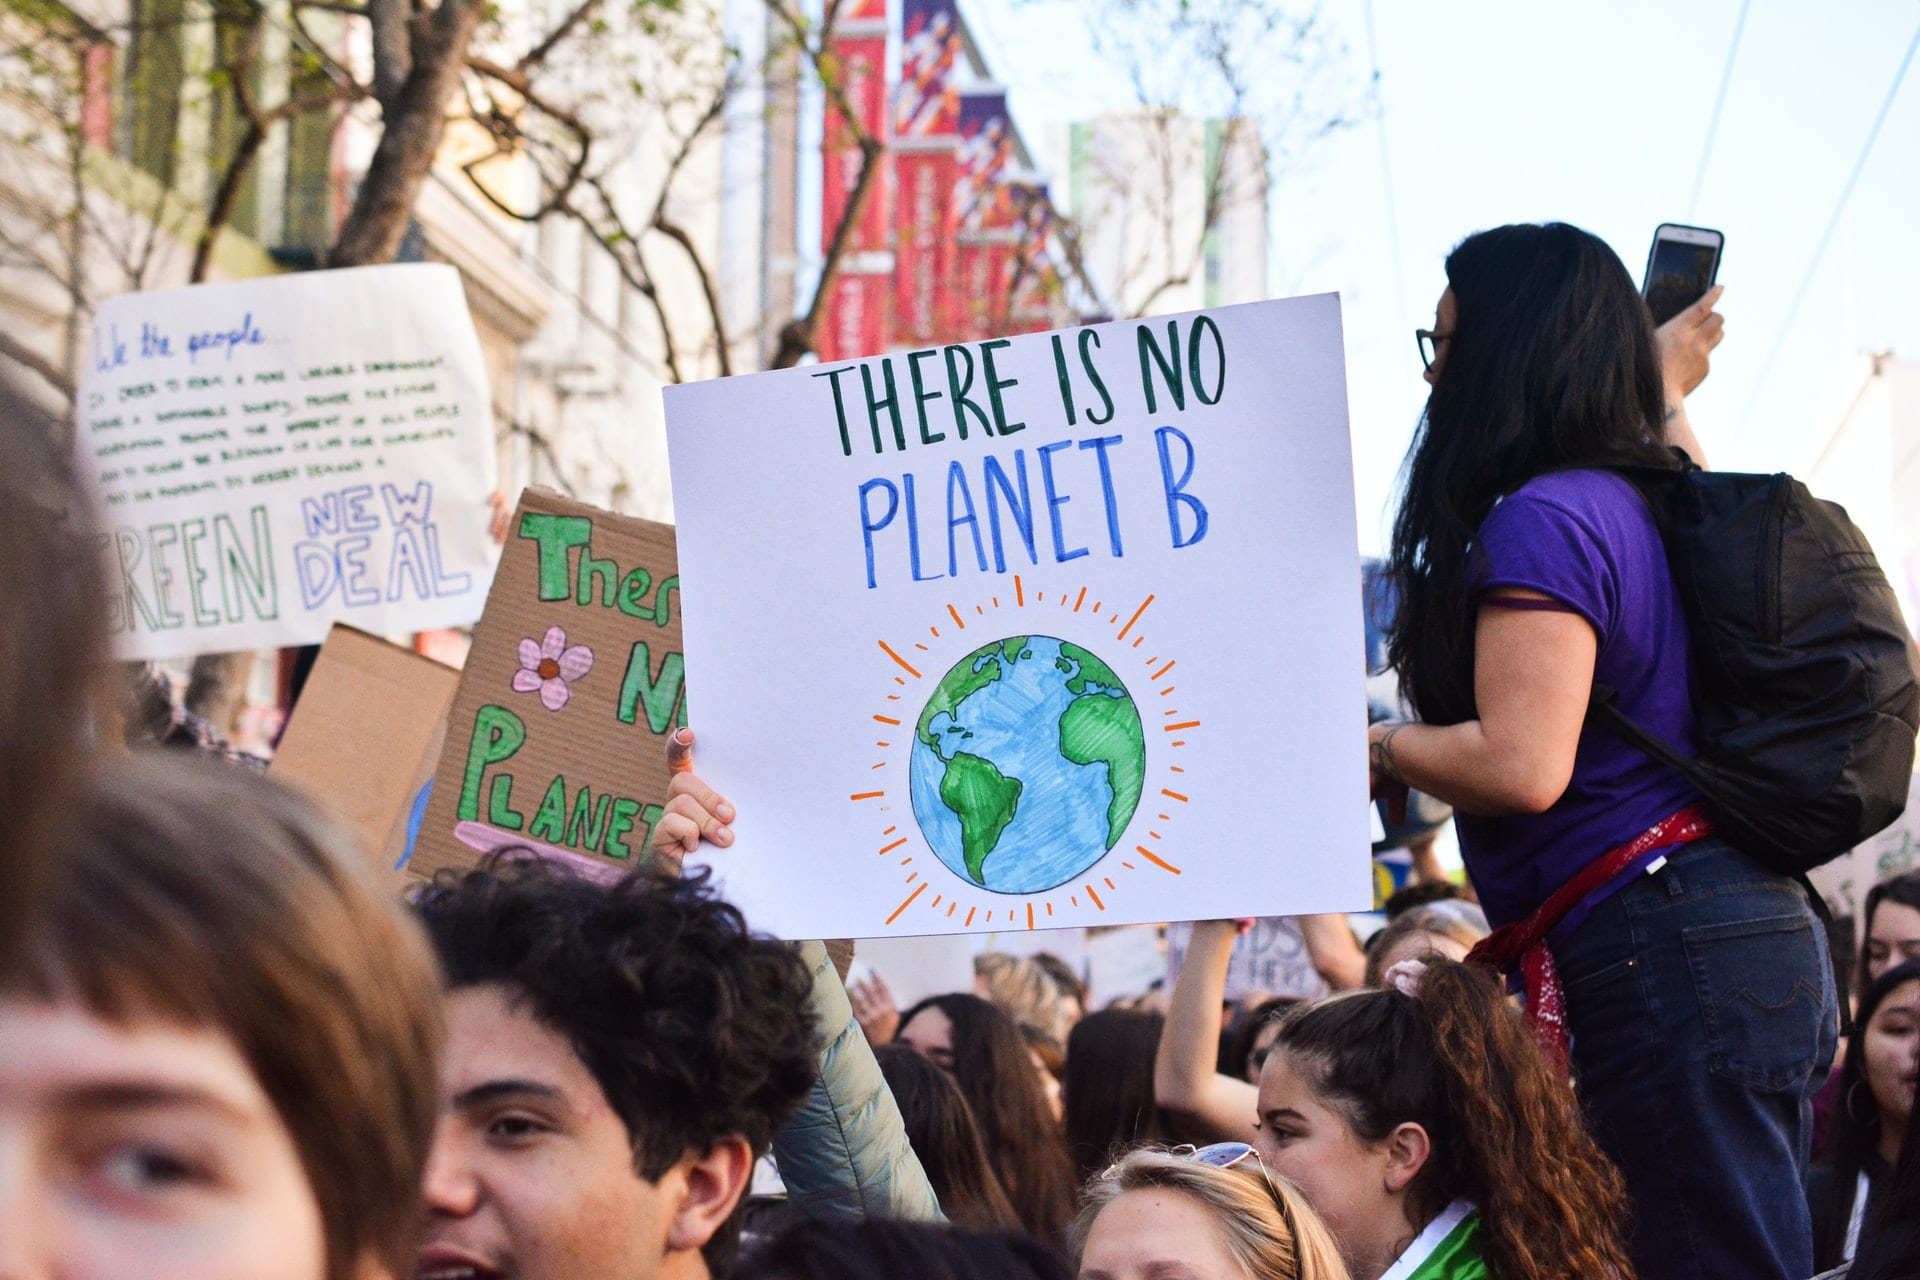 There is no planet B sign at a climate protest